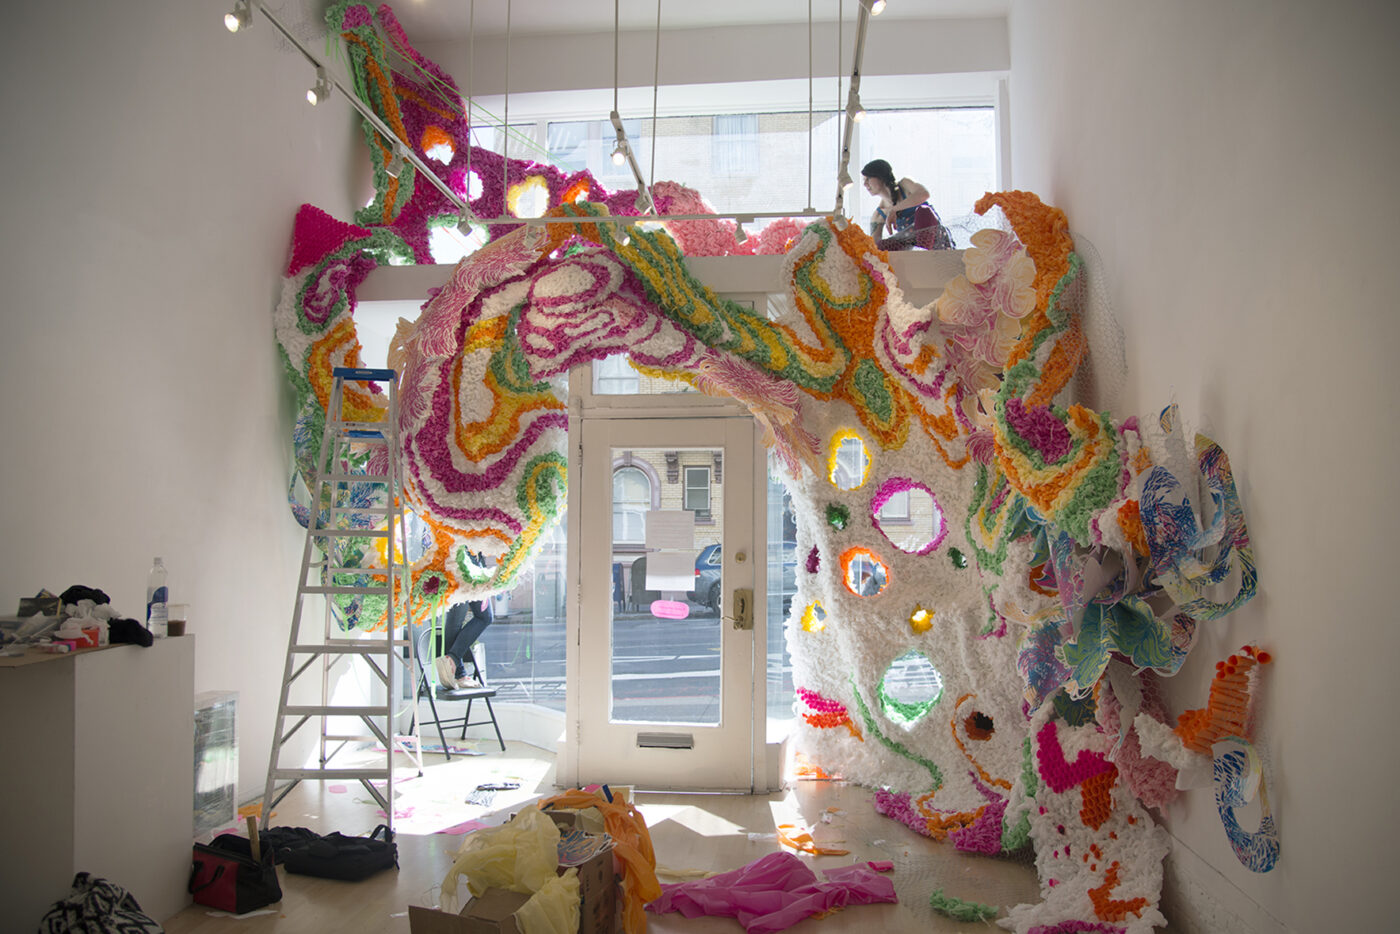 Crystal Wagner, sculpture, paper, installations